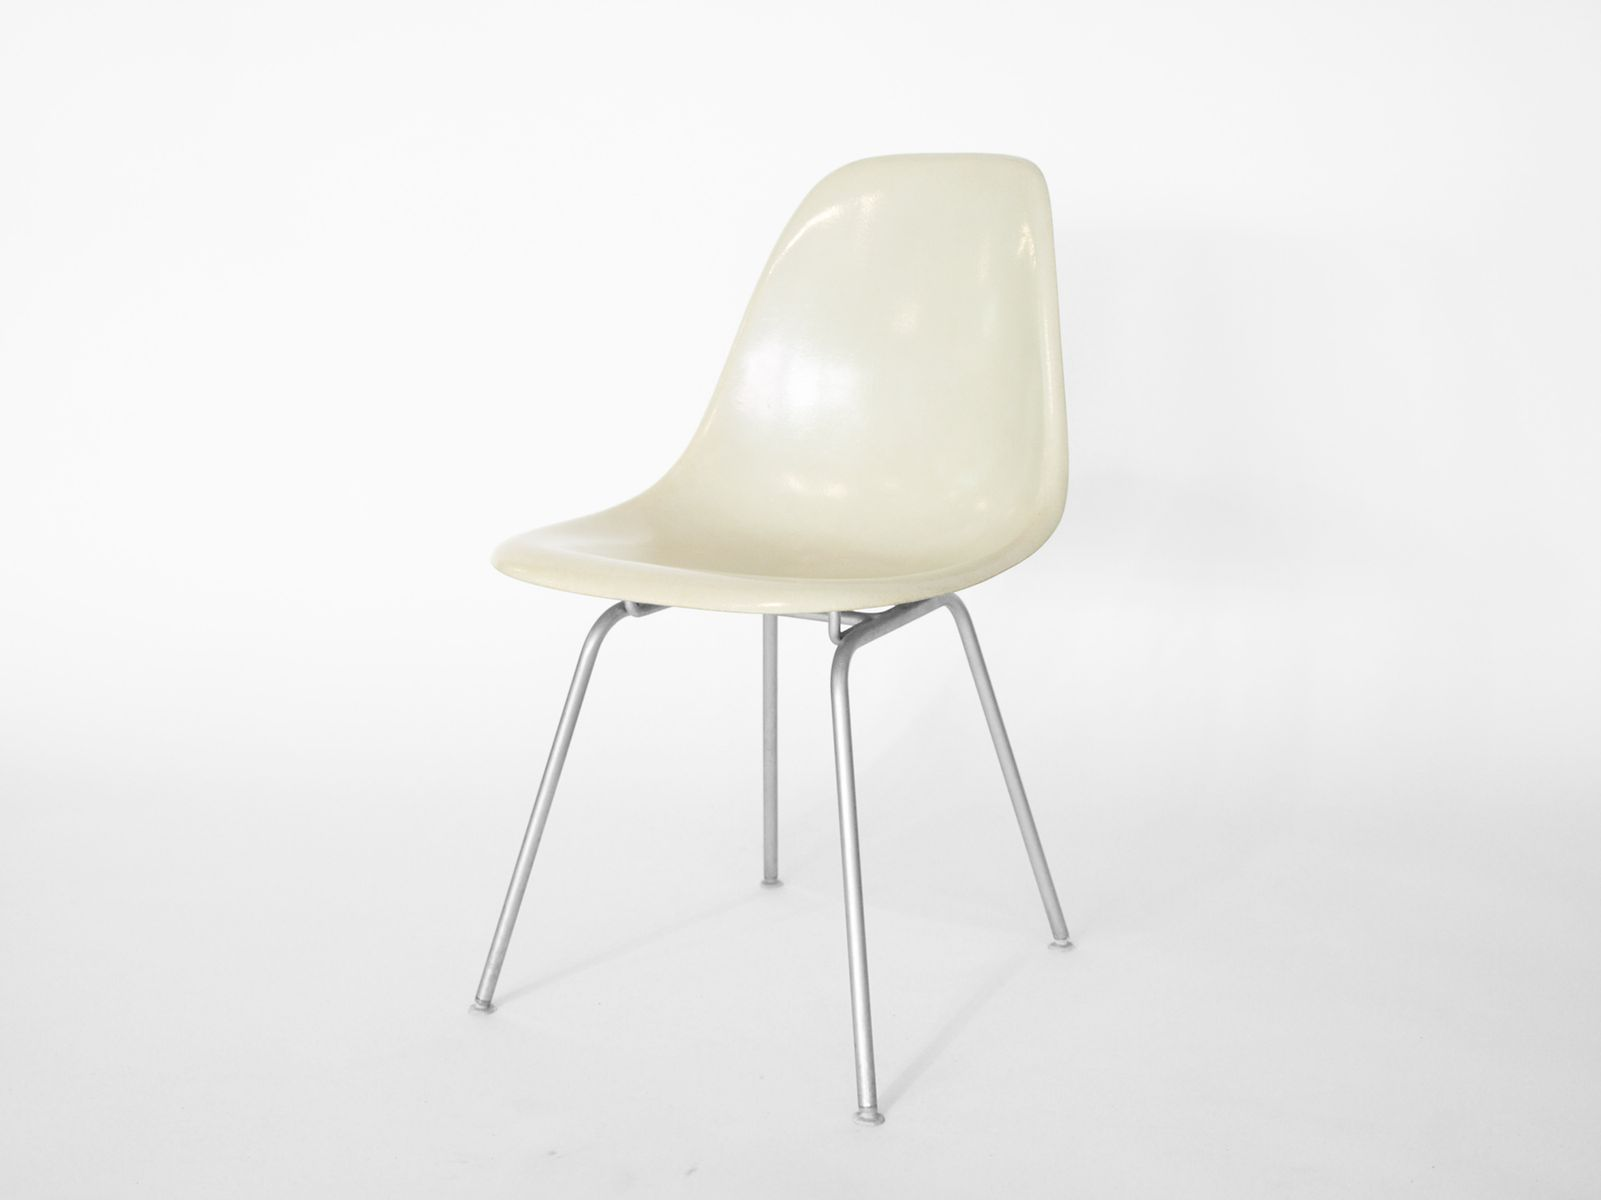 vintage side chair by charles ray eames for herman miller for sale